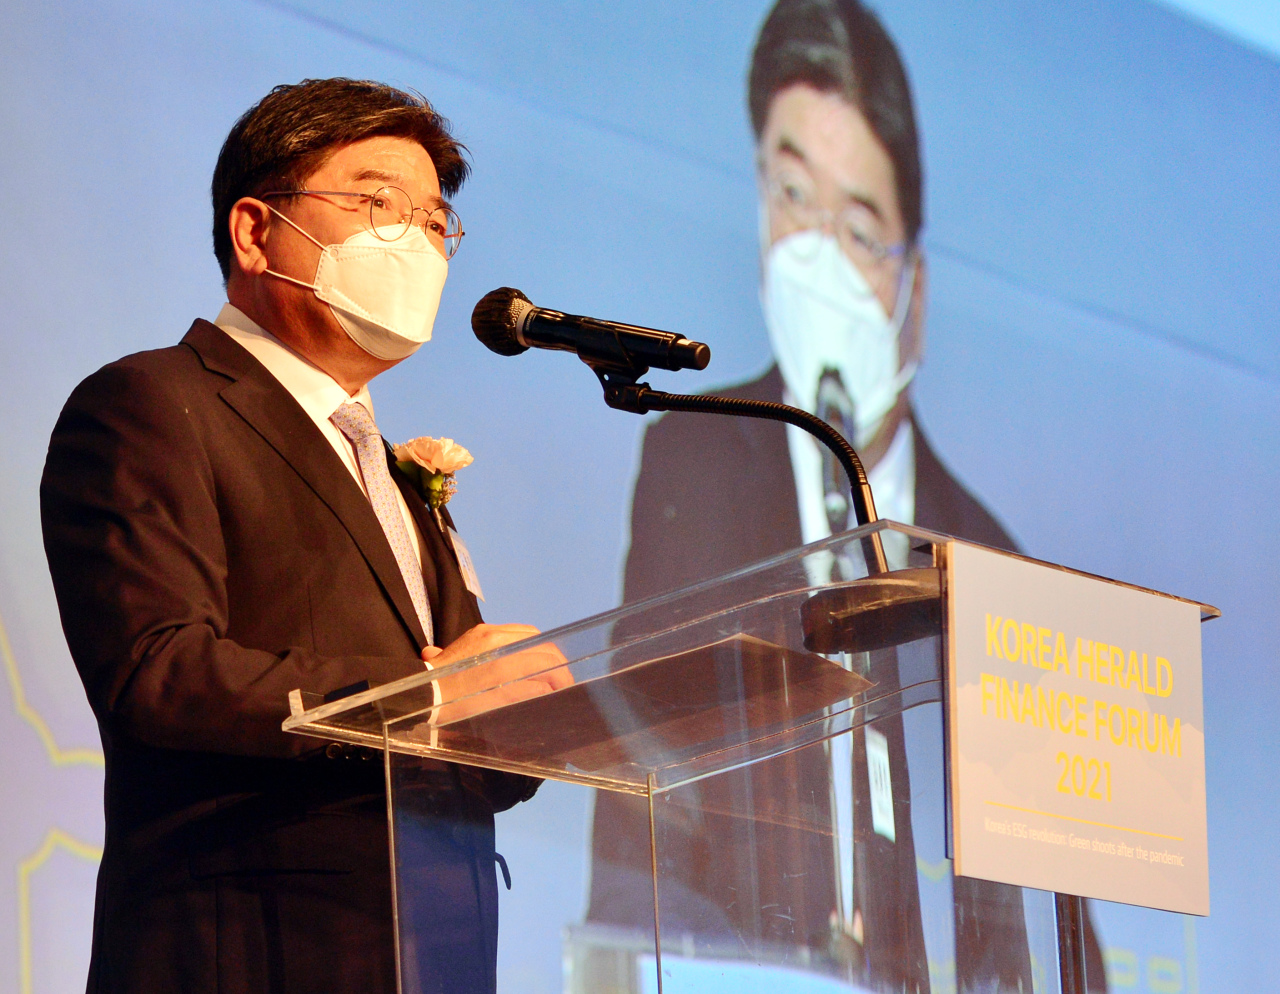 National Pension Service Chairman and Chief Executive Officer Kim Yong-jin delivers a keynote speech during The Korea Herald Finance and Investment Forum held in Seoul, Tuesday. (Park Hyun-koo/The Korea Herald)